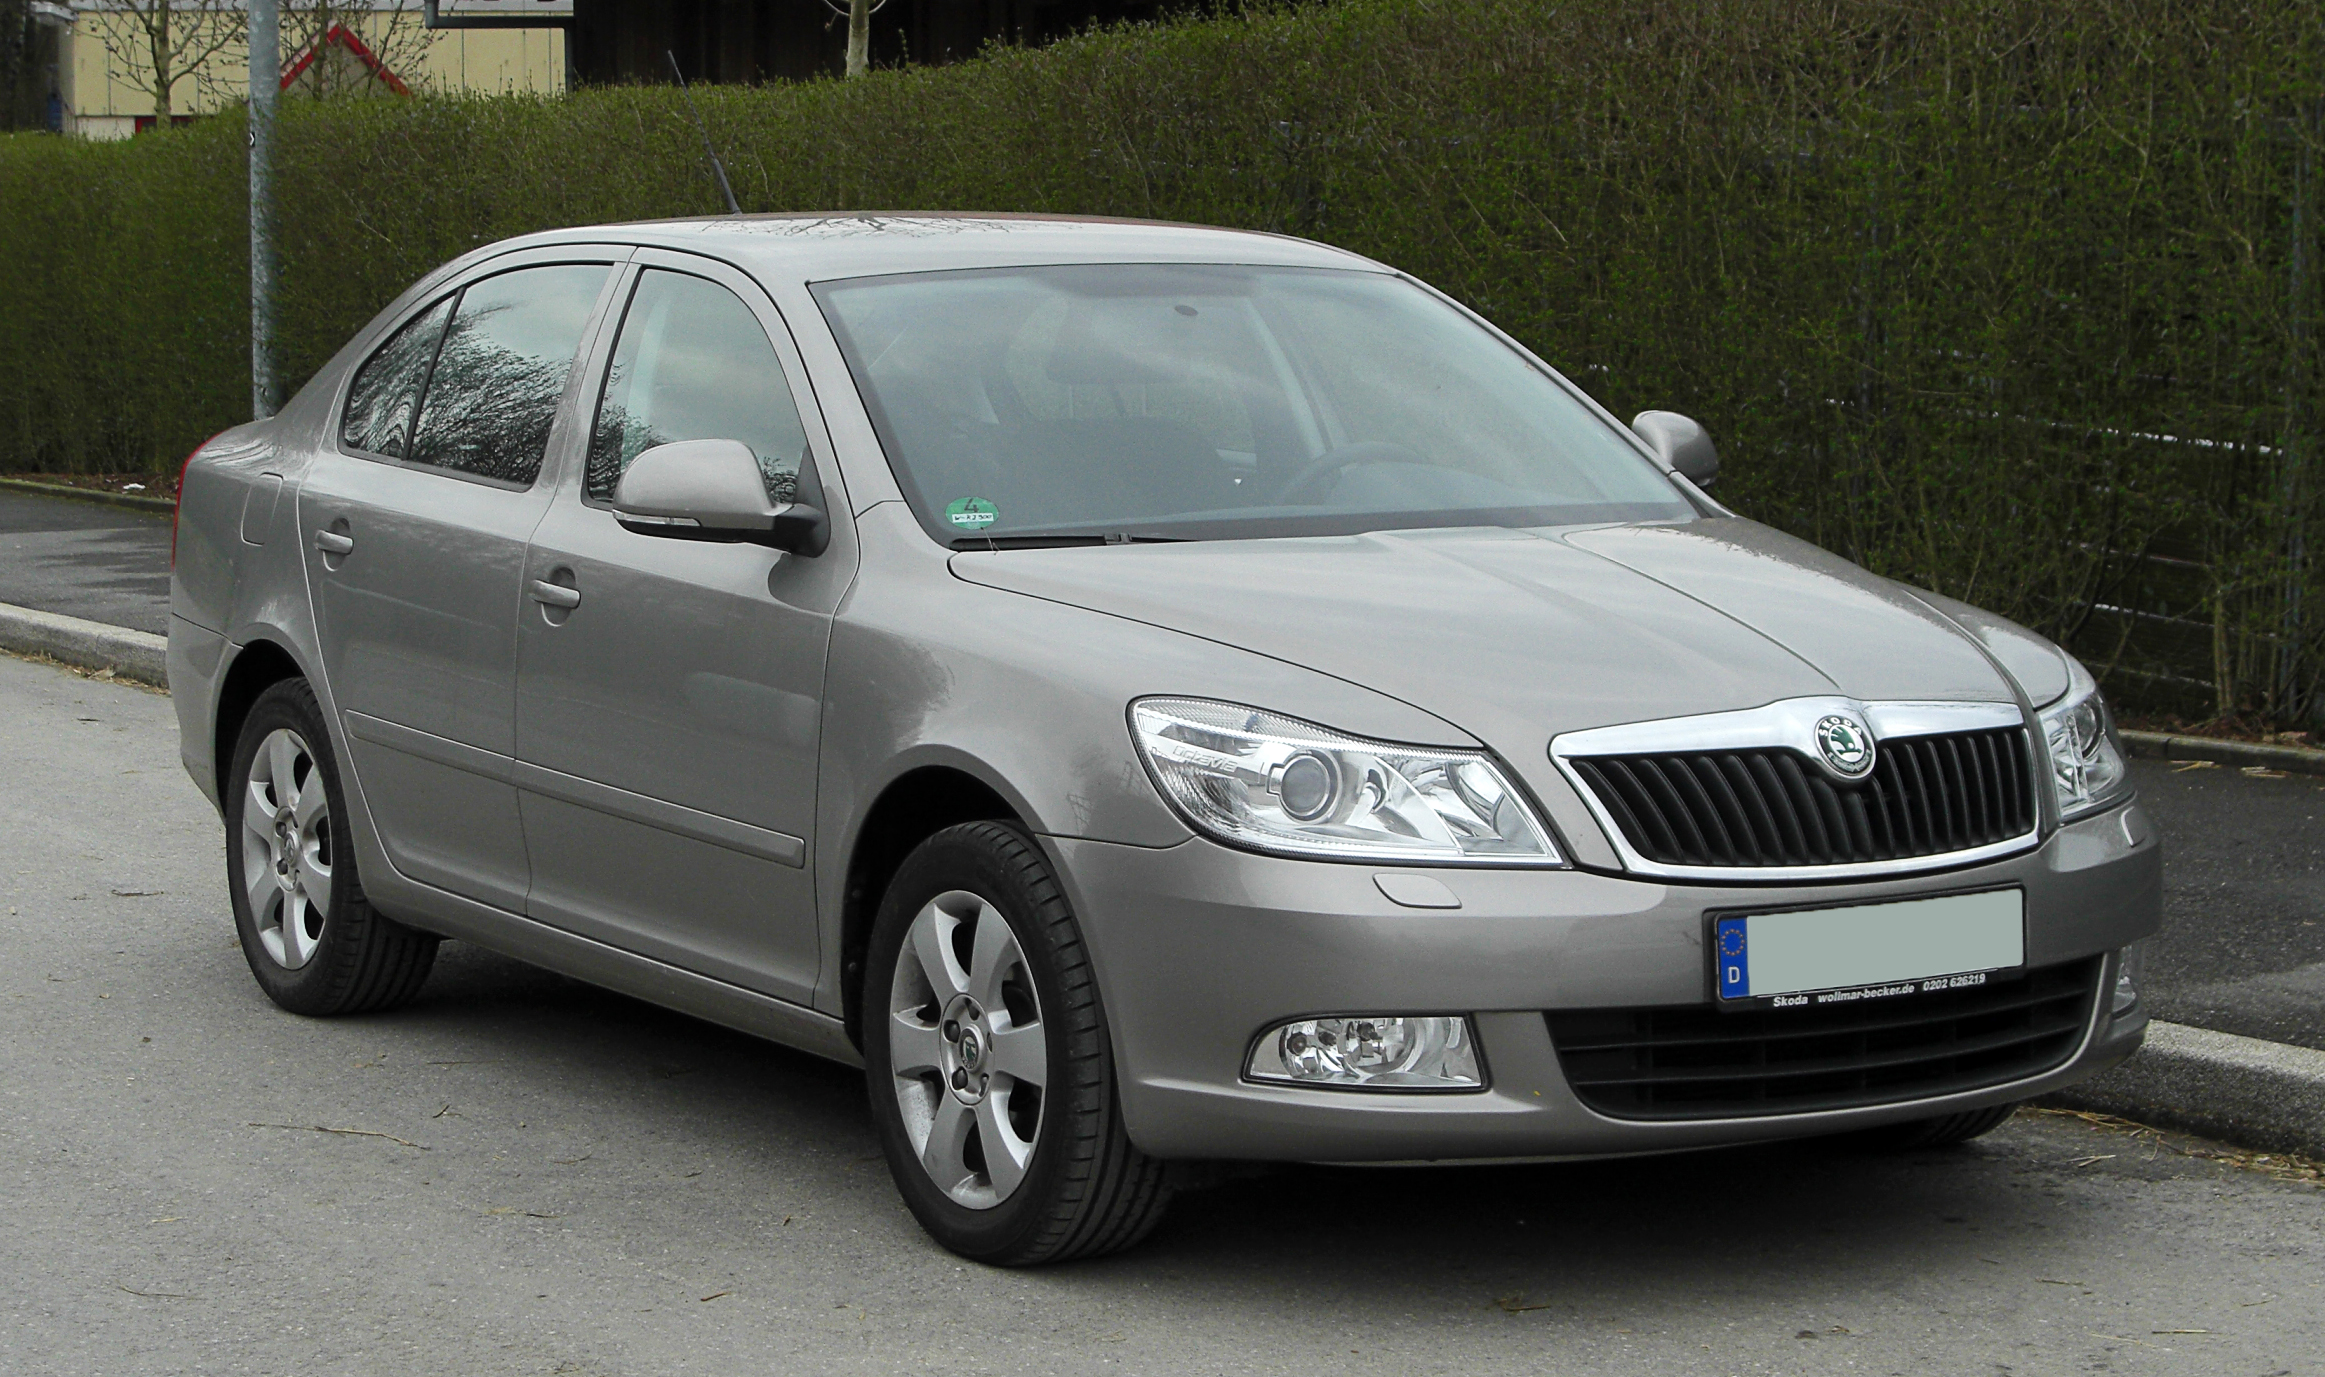 file skoda octavia tdi ii facelift frontansicht 1 april 2011 w wikimedia. Black Bedroom Furniture Sets. Home Design Ideas